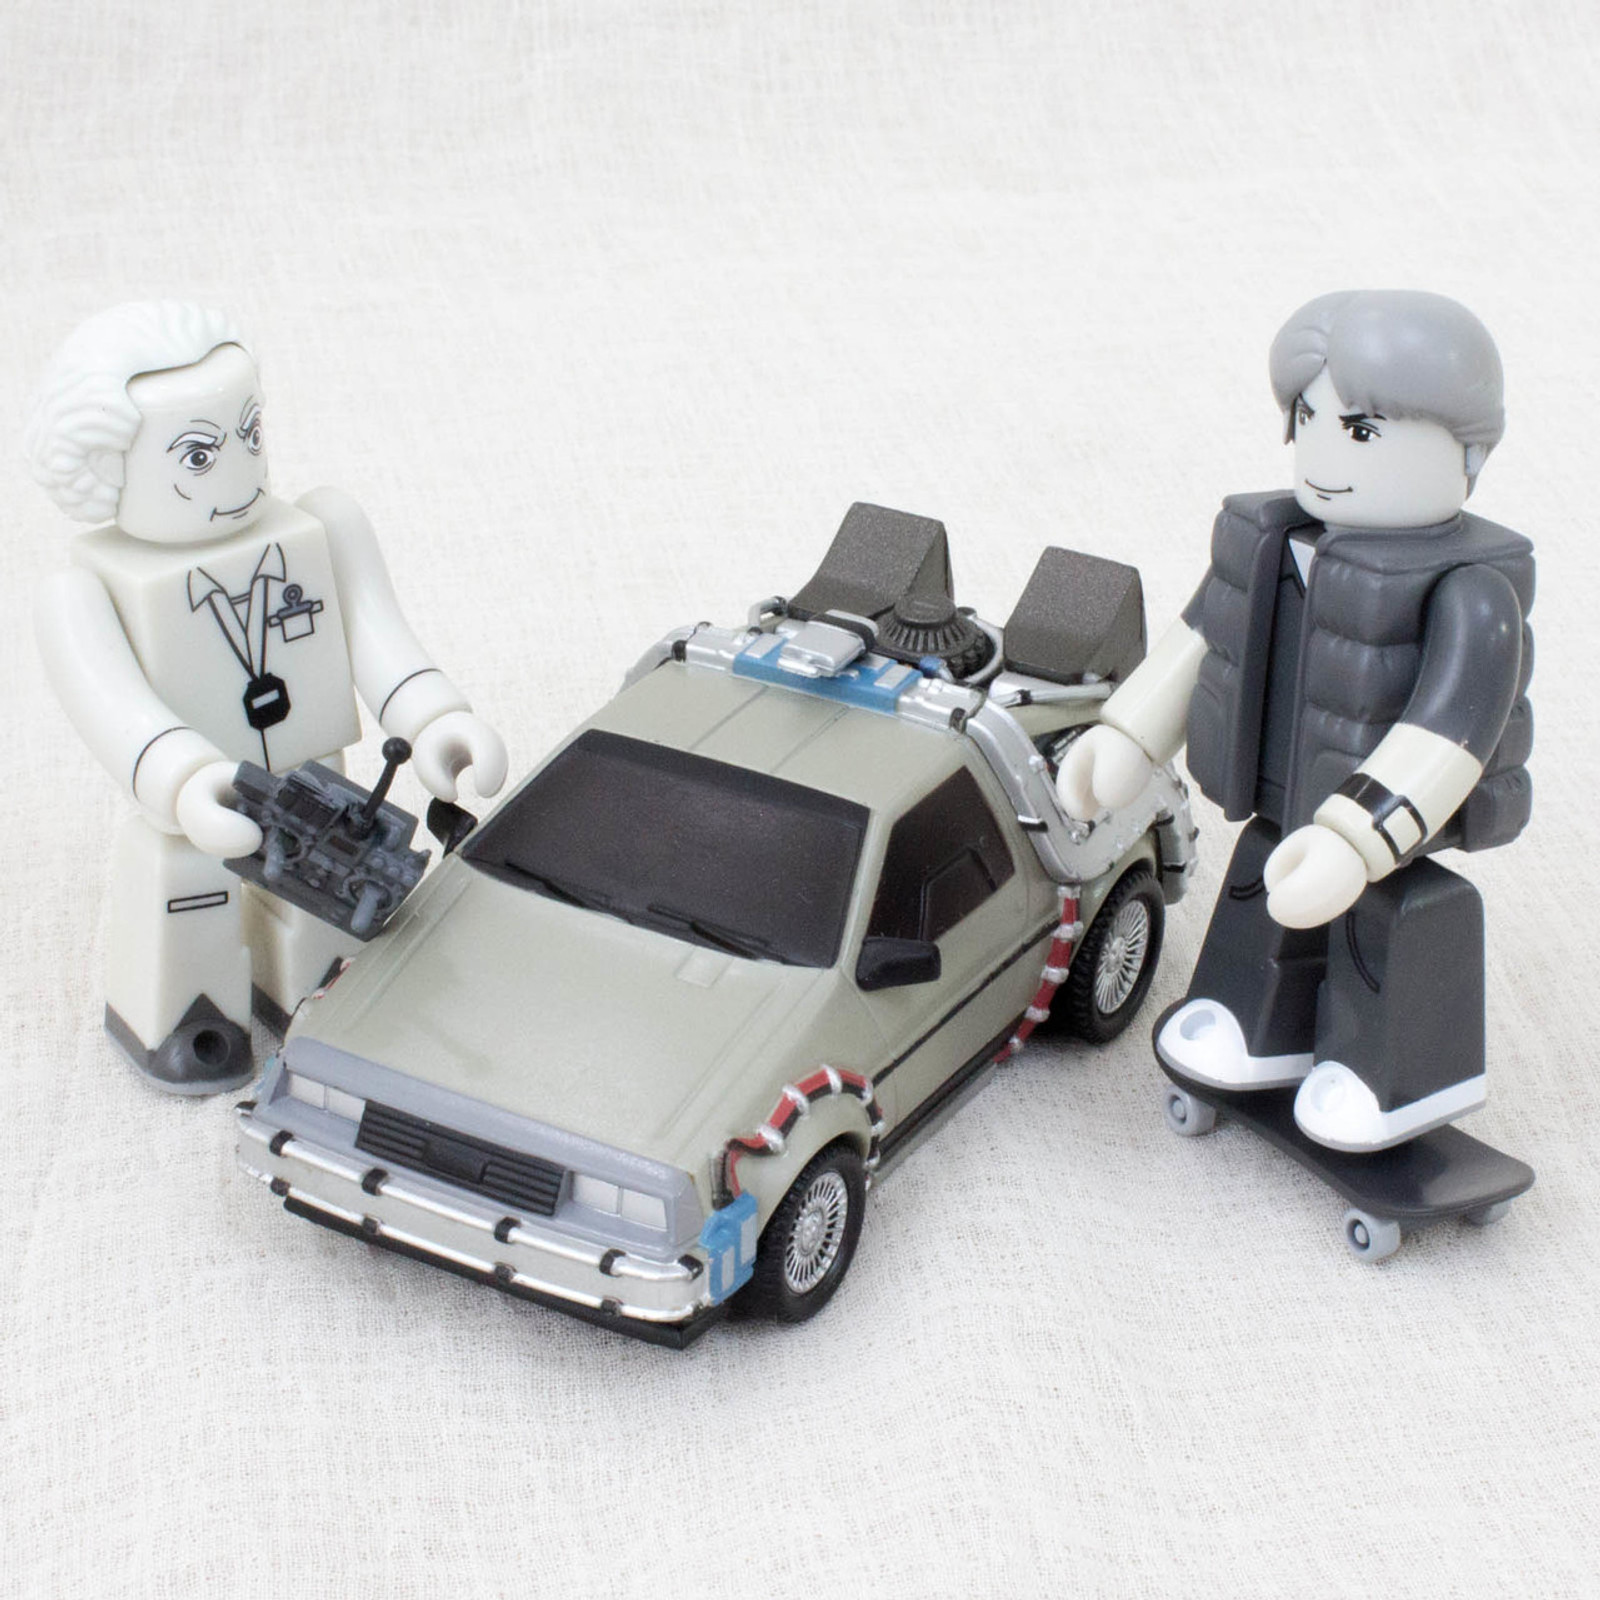 RARE! Back to the Future Kubrick Set Figure 20th Limited Monochrome Medicom